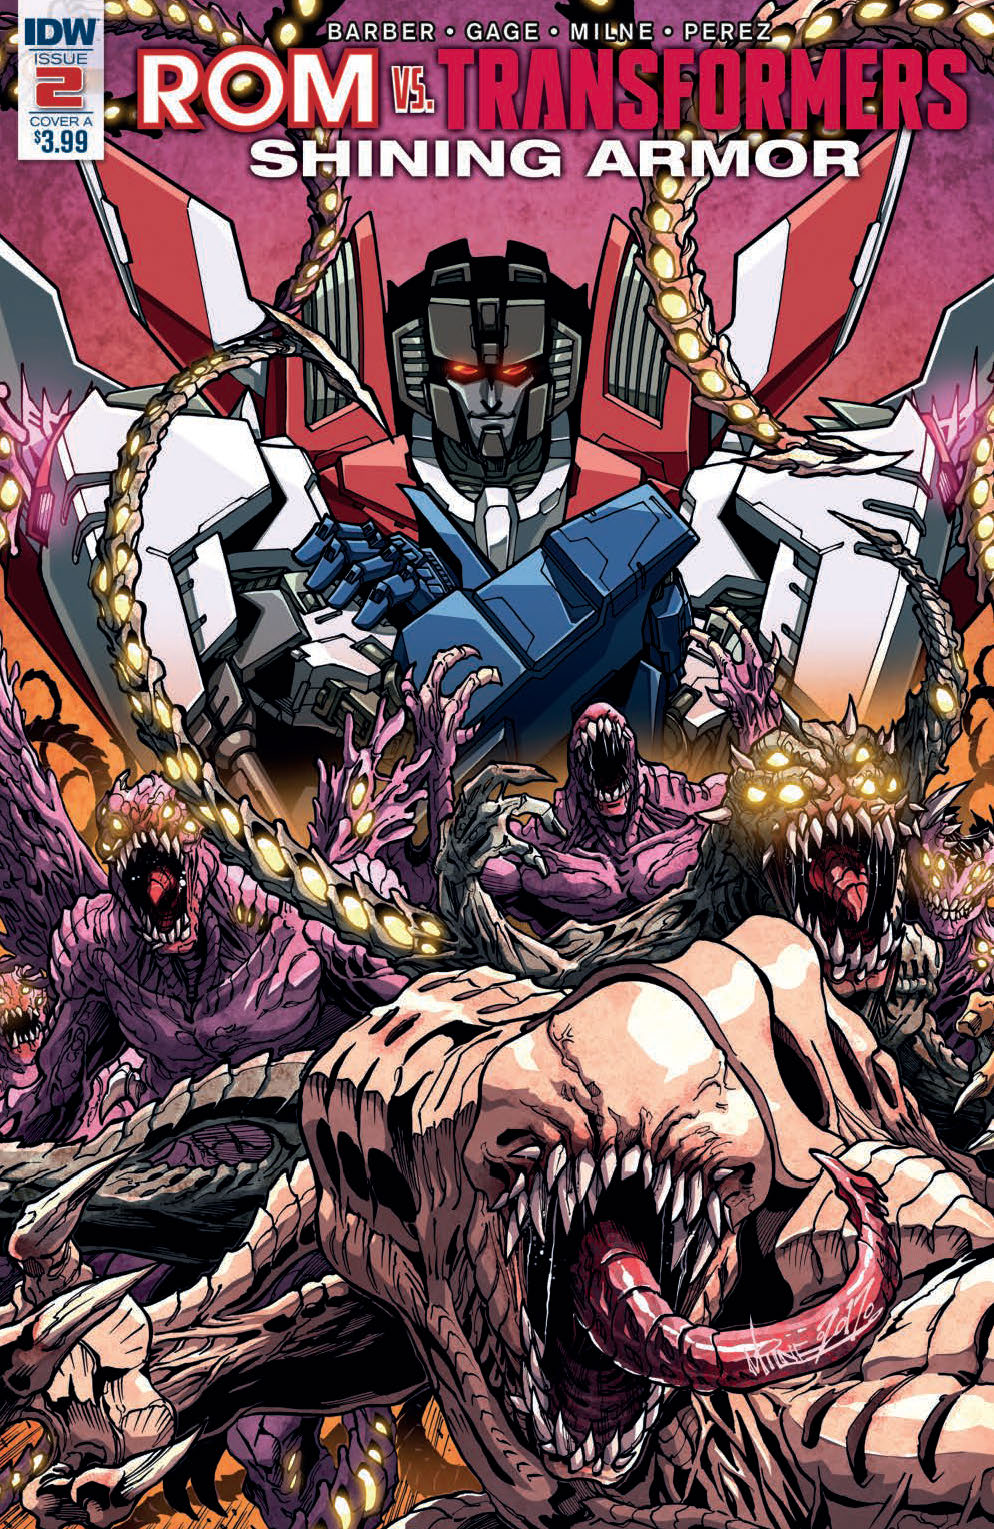 Rom Vs. Transformers: Shining Armor #2 (of 5)